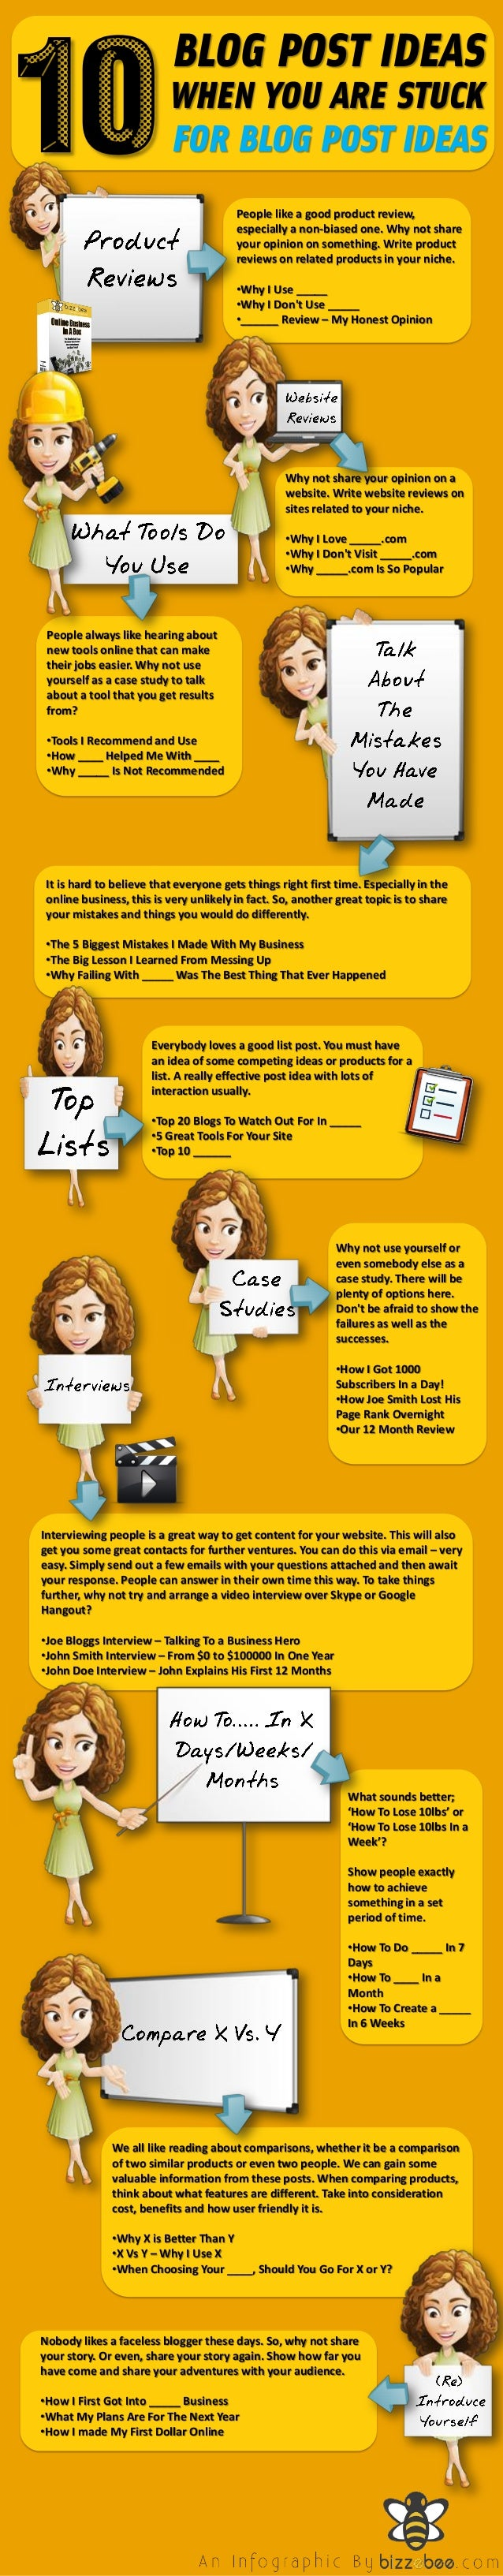 10 blog post ideas when you are stuck for blog post ideas